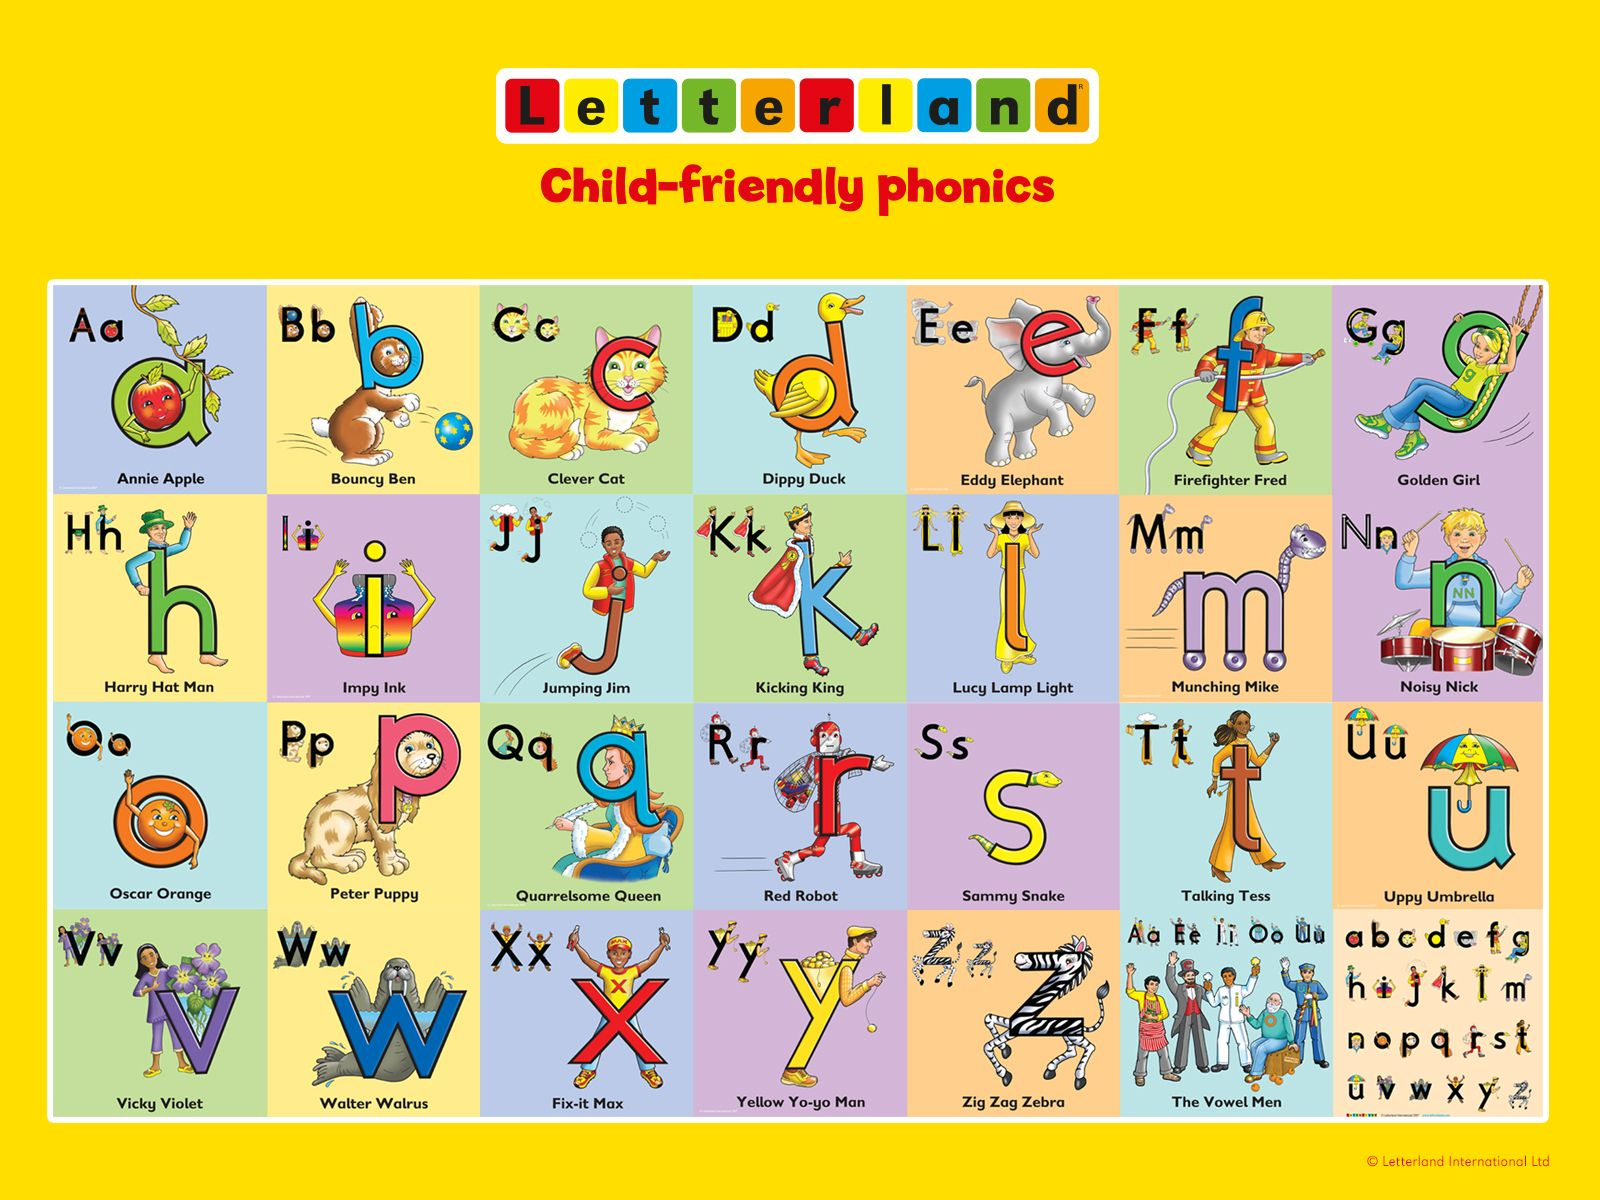 Worksheets Worksheet On Letter Land Song dress up like letterland child review names and sounds here is phonics activities songs worksheets